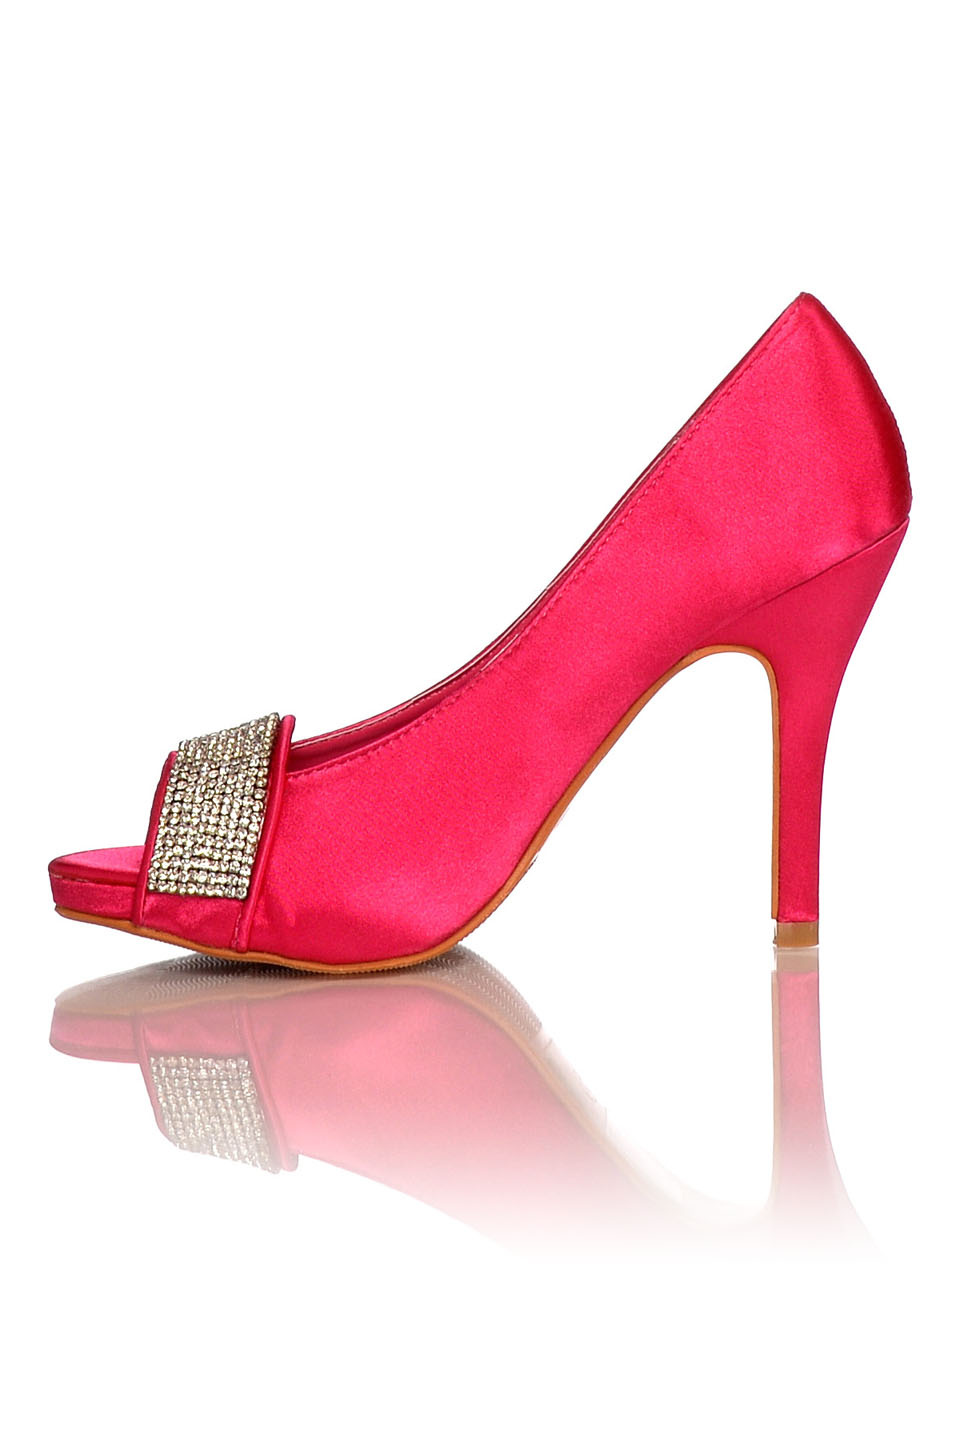 Satin Evening Shoes - Pumps Fuchsia